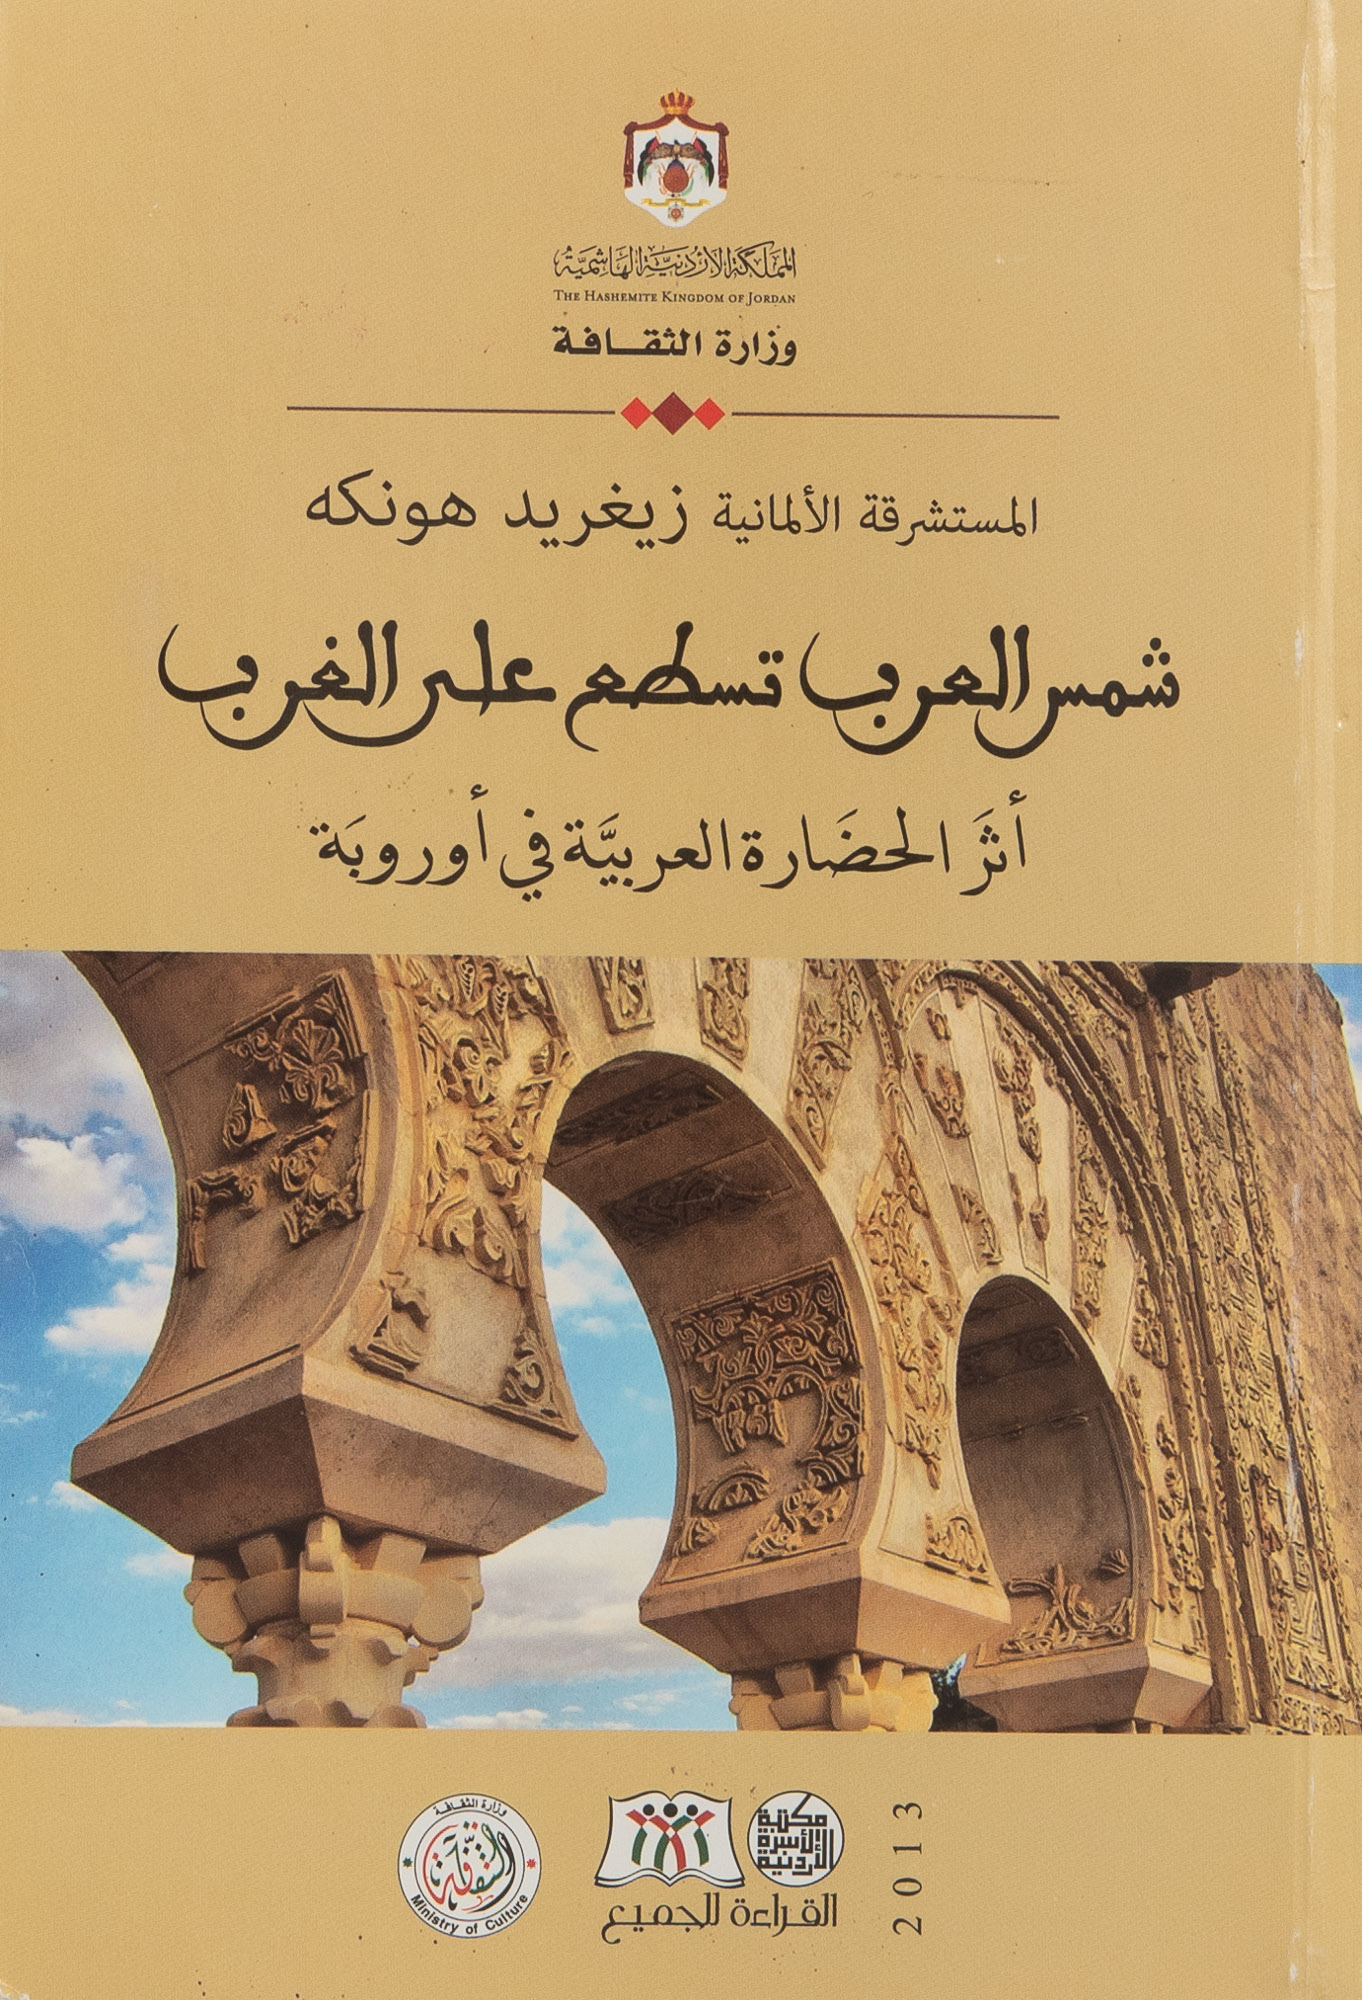 The cover of the book Allah's Sun Over the Occident featuring a historic arch